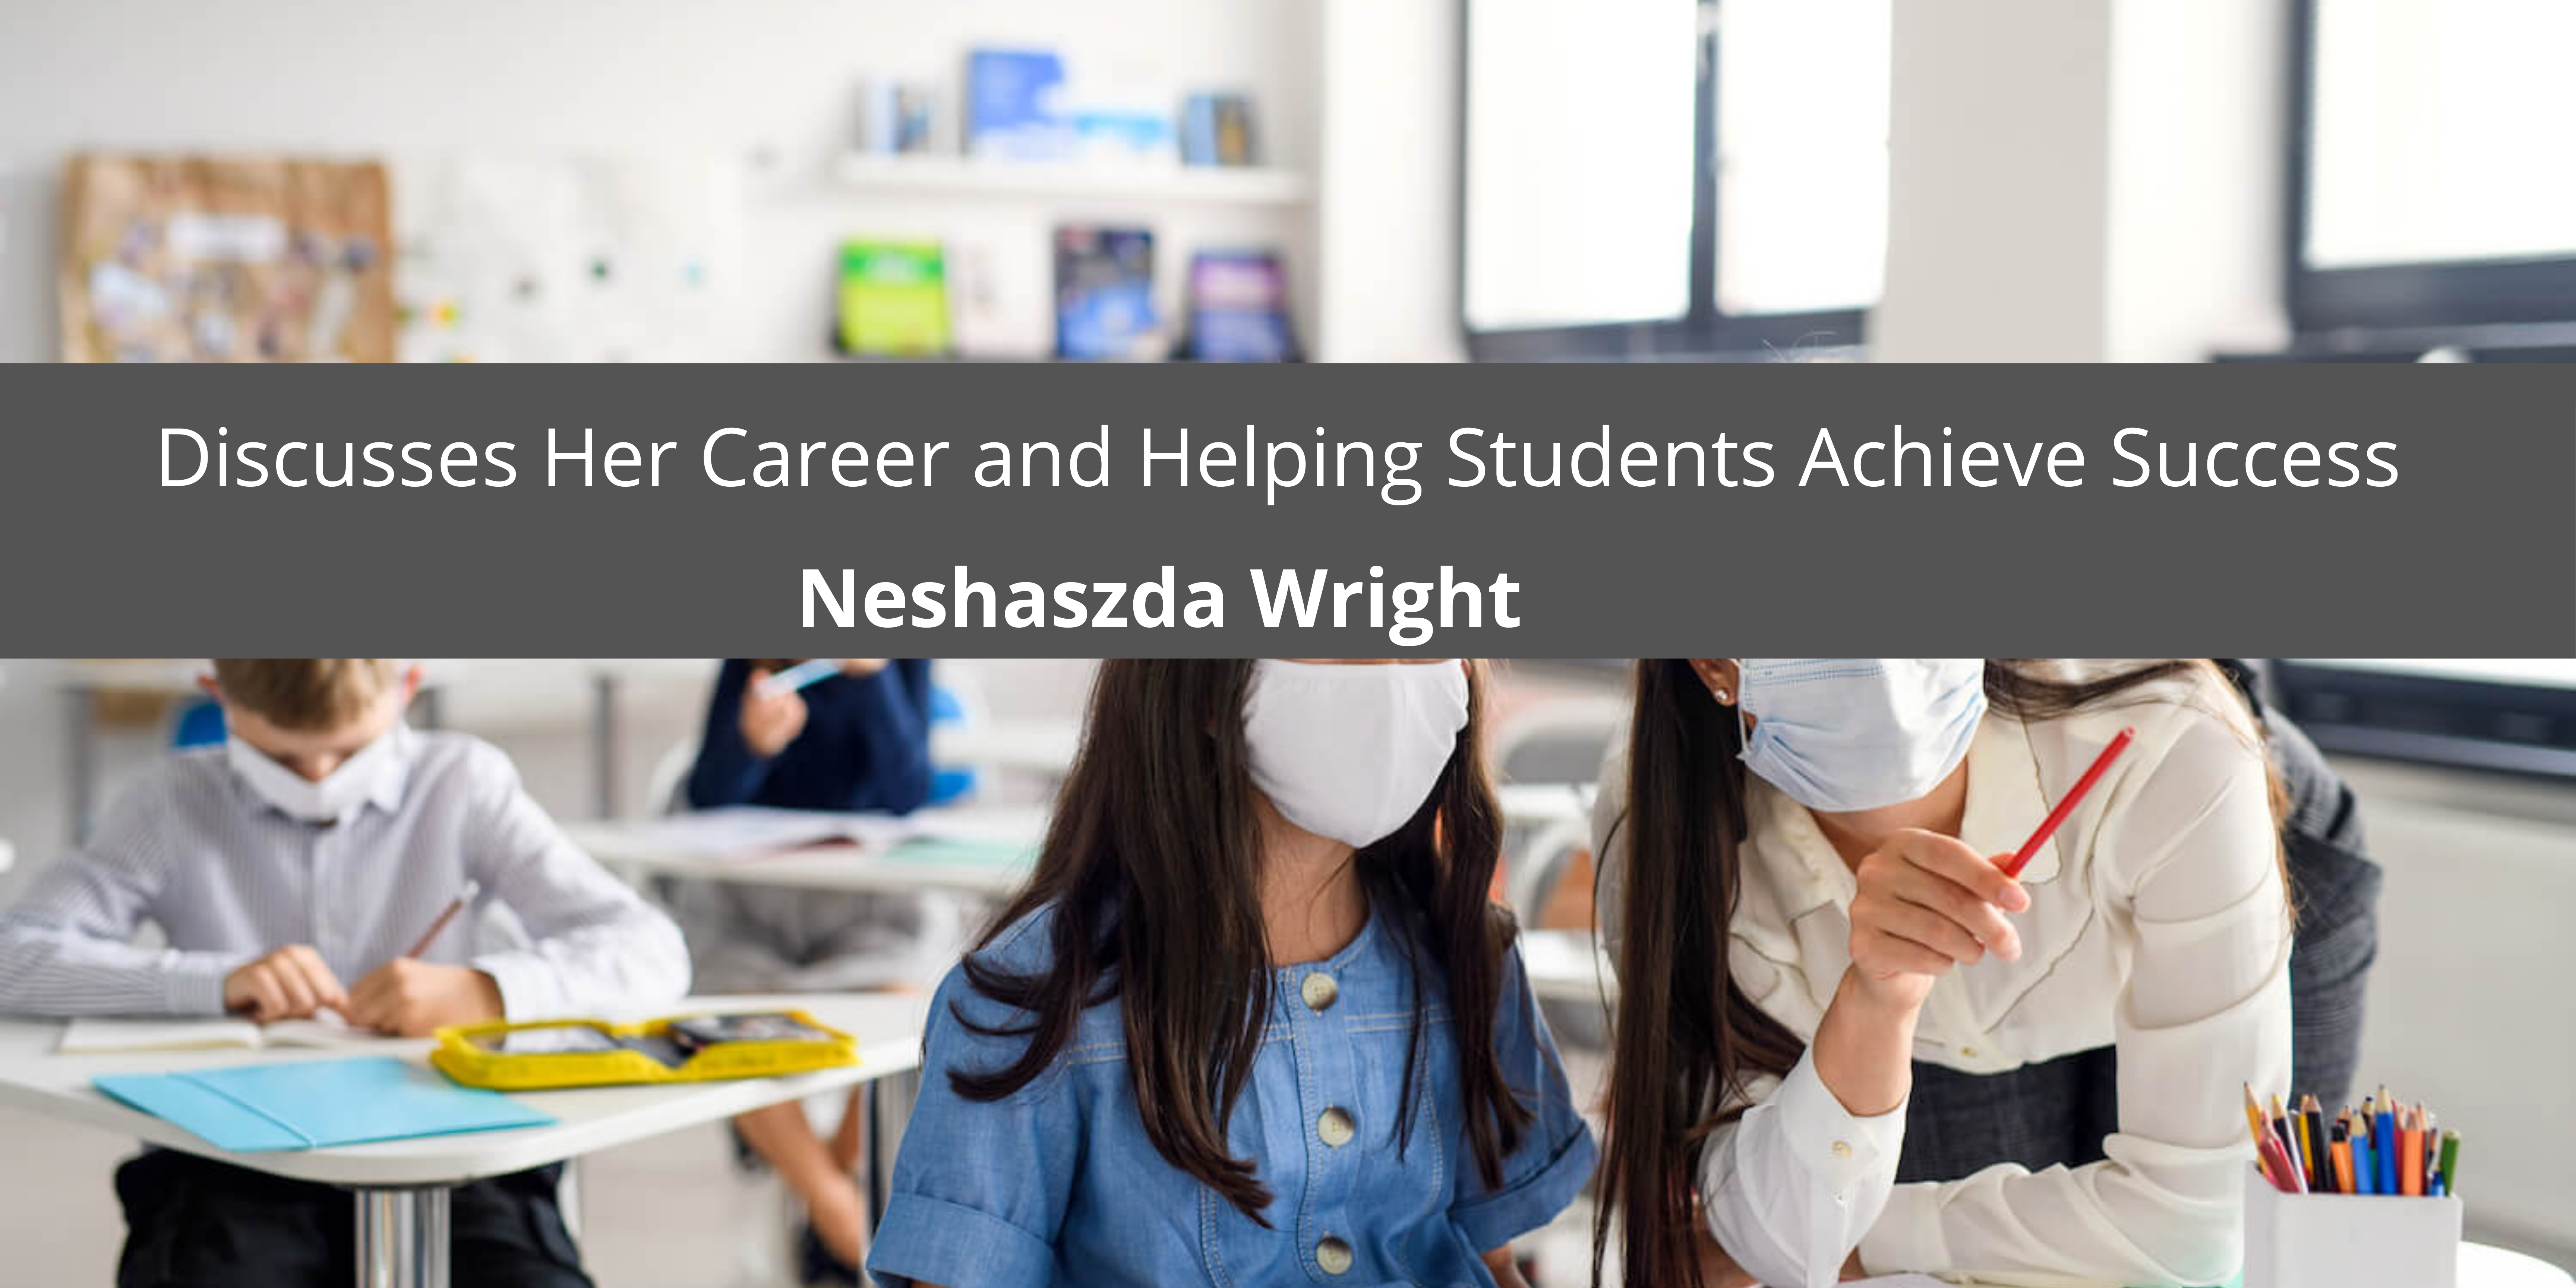 Neshaszda Wright Discusses Her Career and Helping Students Achieve Success